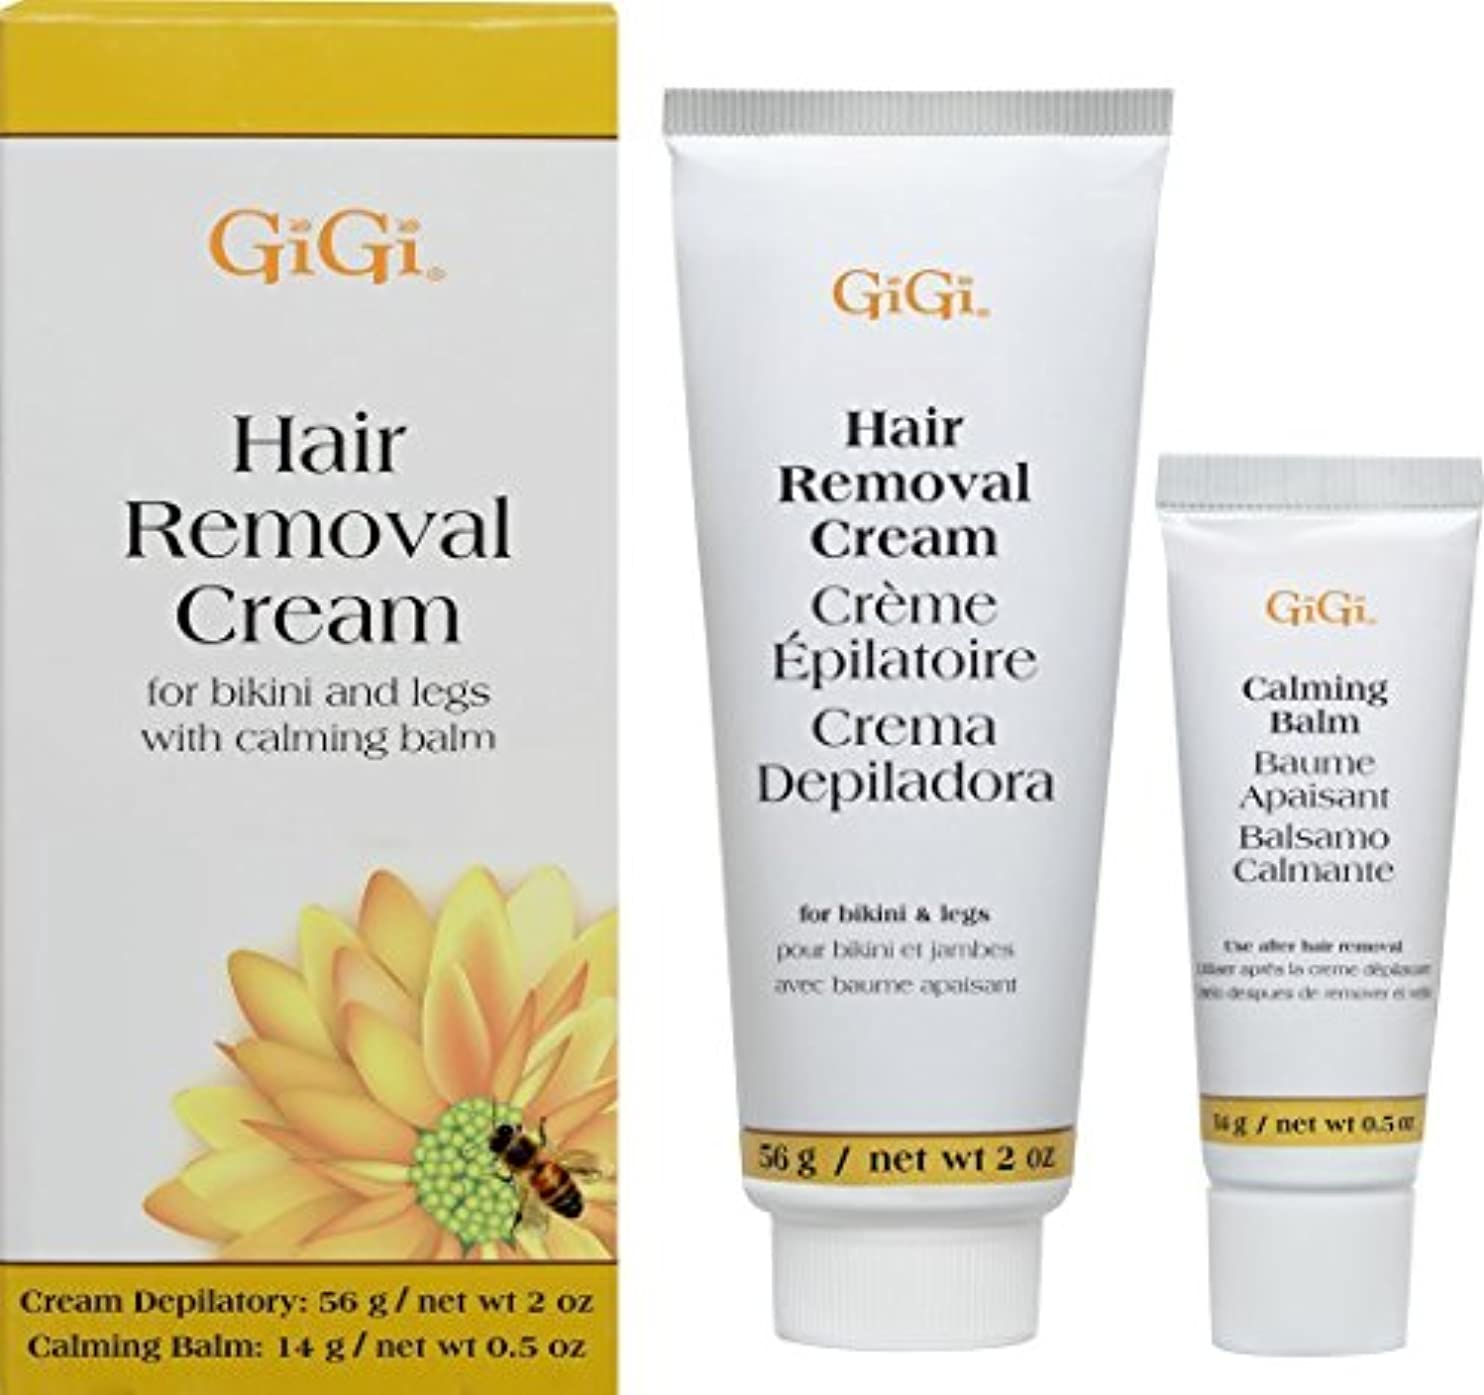 専門テント対角線(1) - Gigi Hair Removal Cream W/Balm For Bikini & Legs